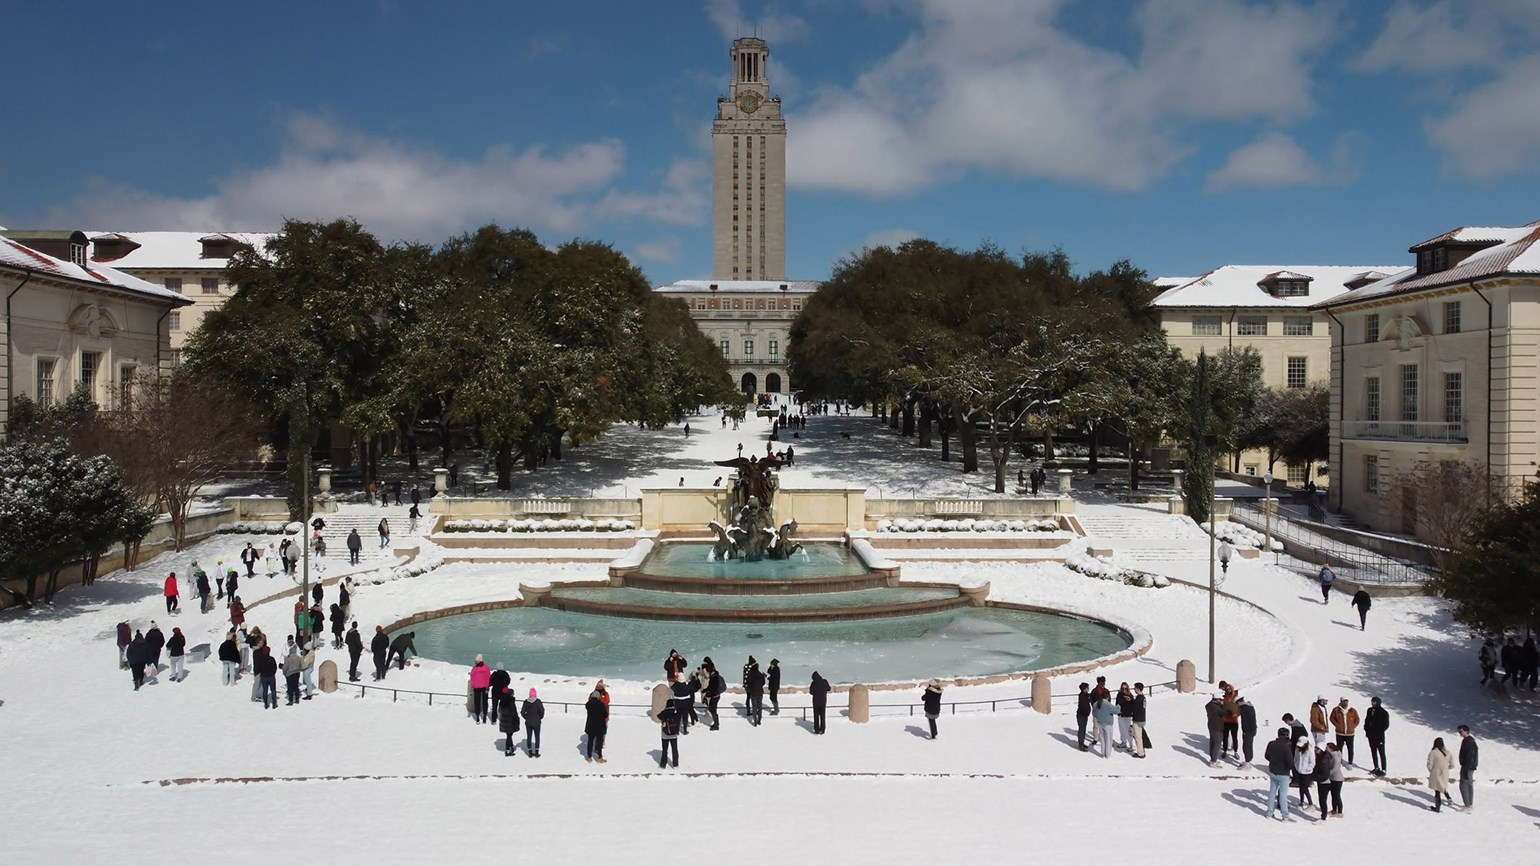 Austin Snow [Credit: Travel_with_me/Shutterstock.com]